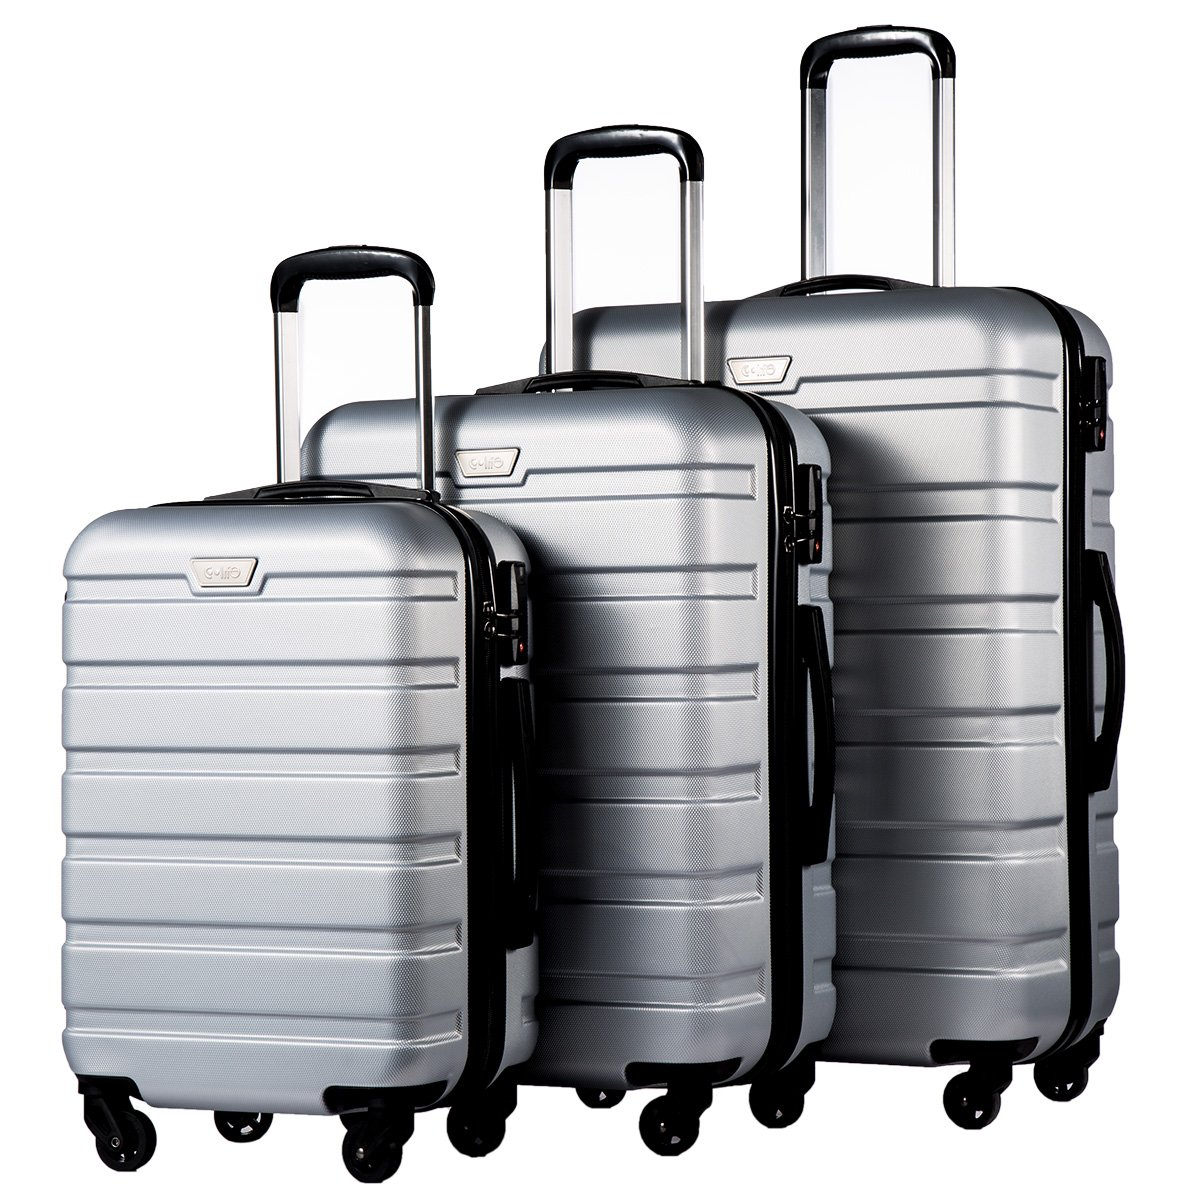 Coolife Luggage 3 Piece Set Spinner Trolley Suitcase Hard Shell Lightweight Carried On Trunk 20inch 24inch 28inch(silver grey) by Coolife